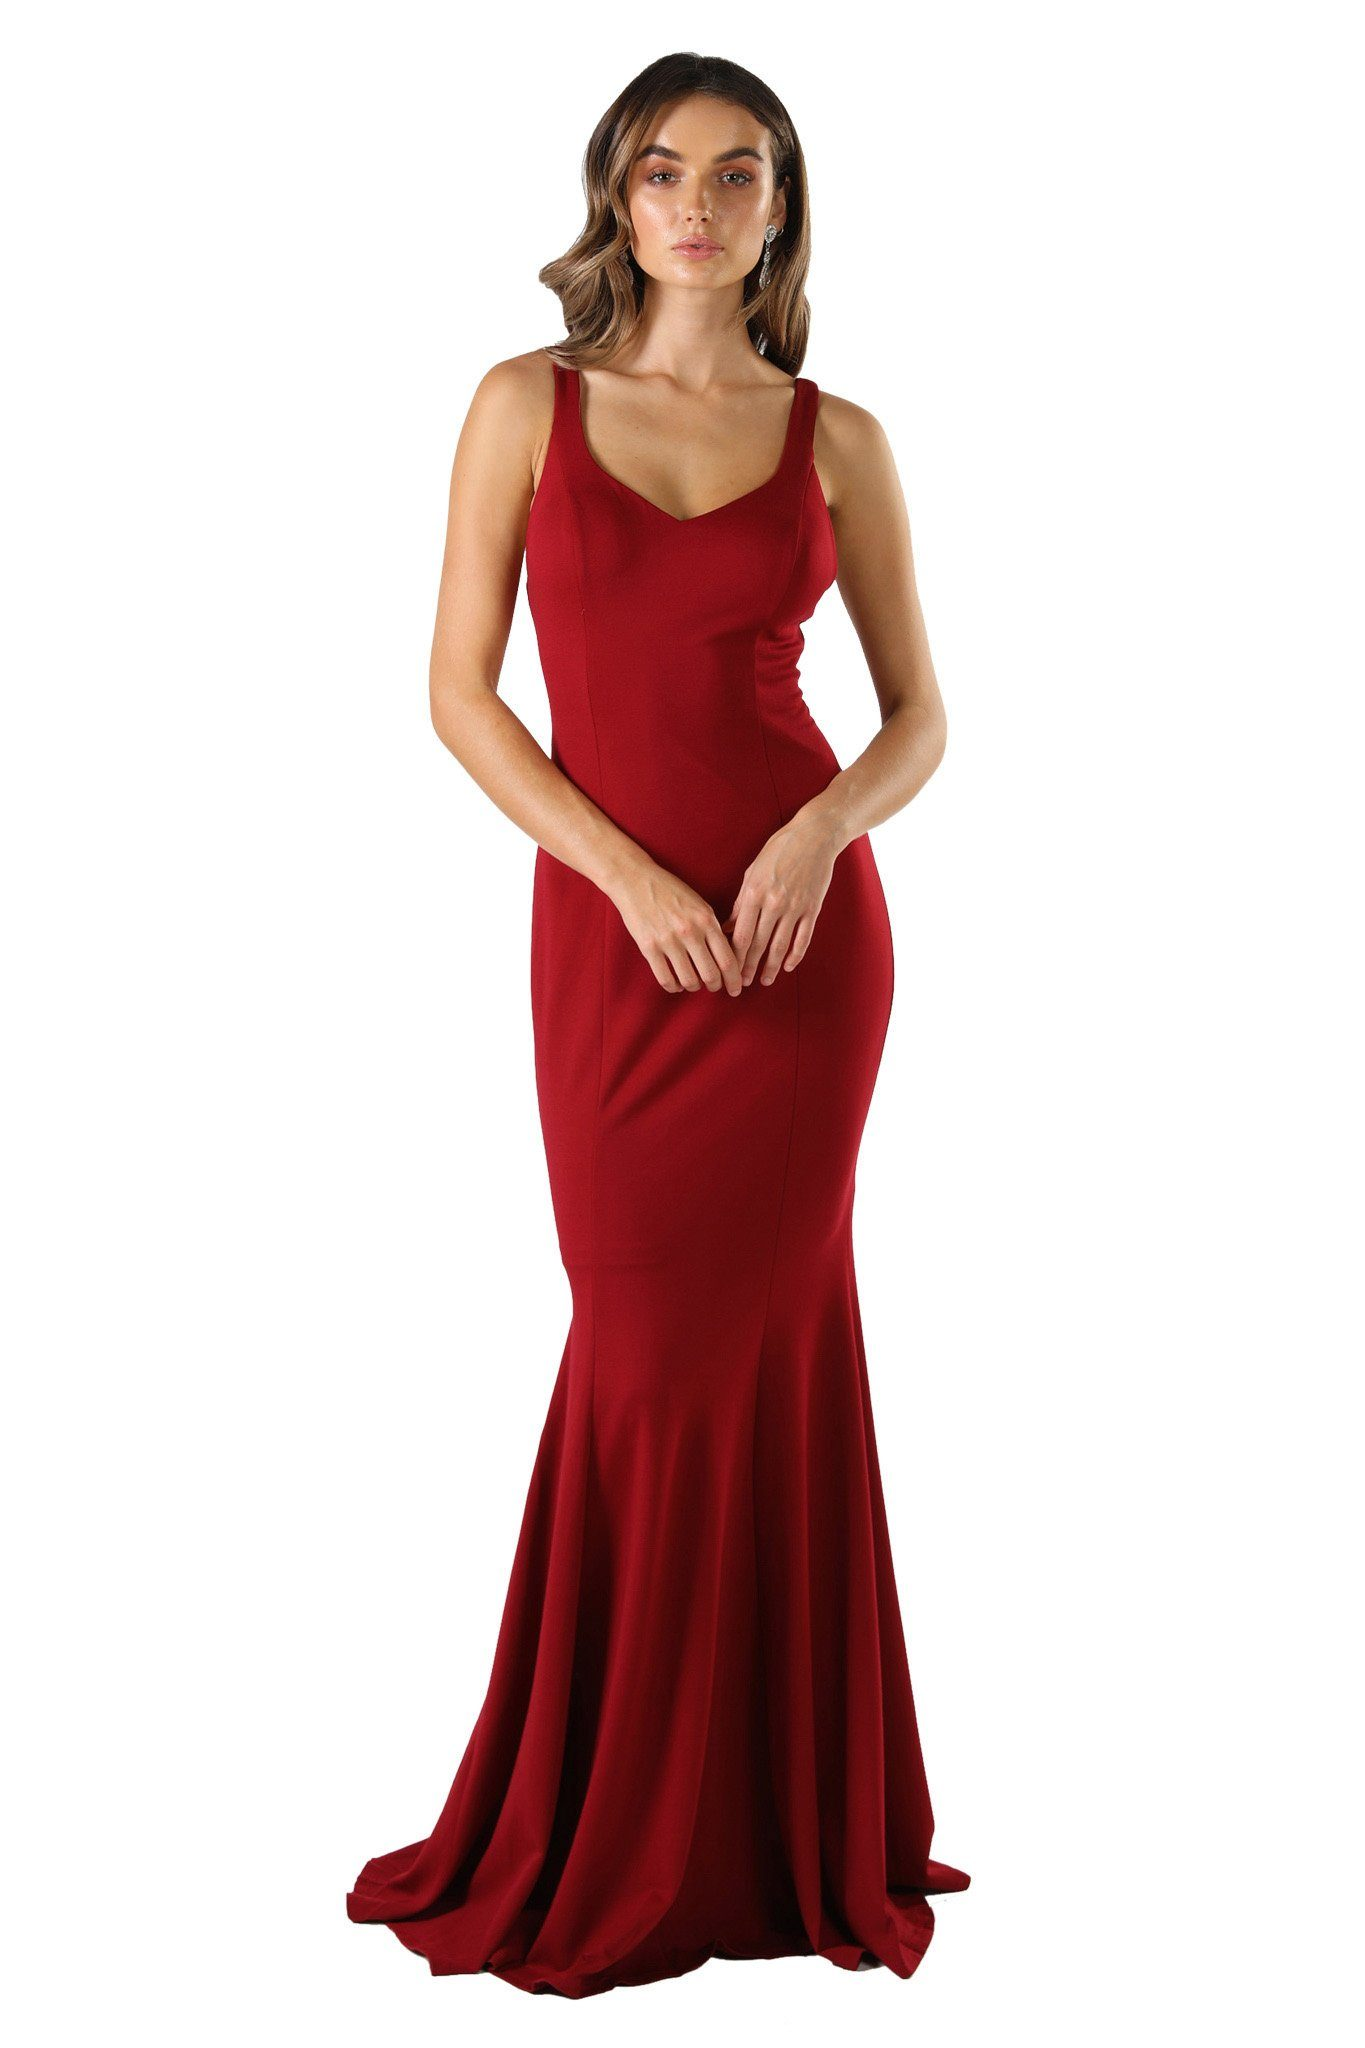 Wine red coloured sleeveless form fitting formal maxi dress featuring subtle sweetheart neckline, shoulder straps, mermaid fishtail and open back design